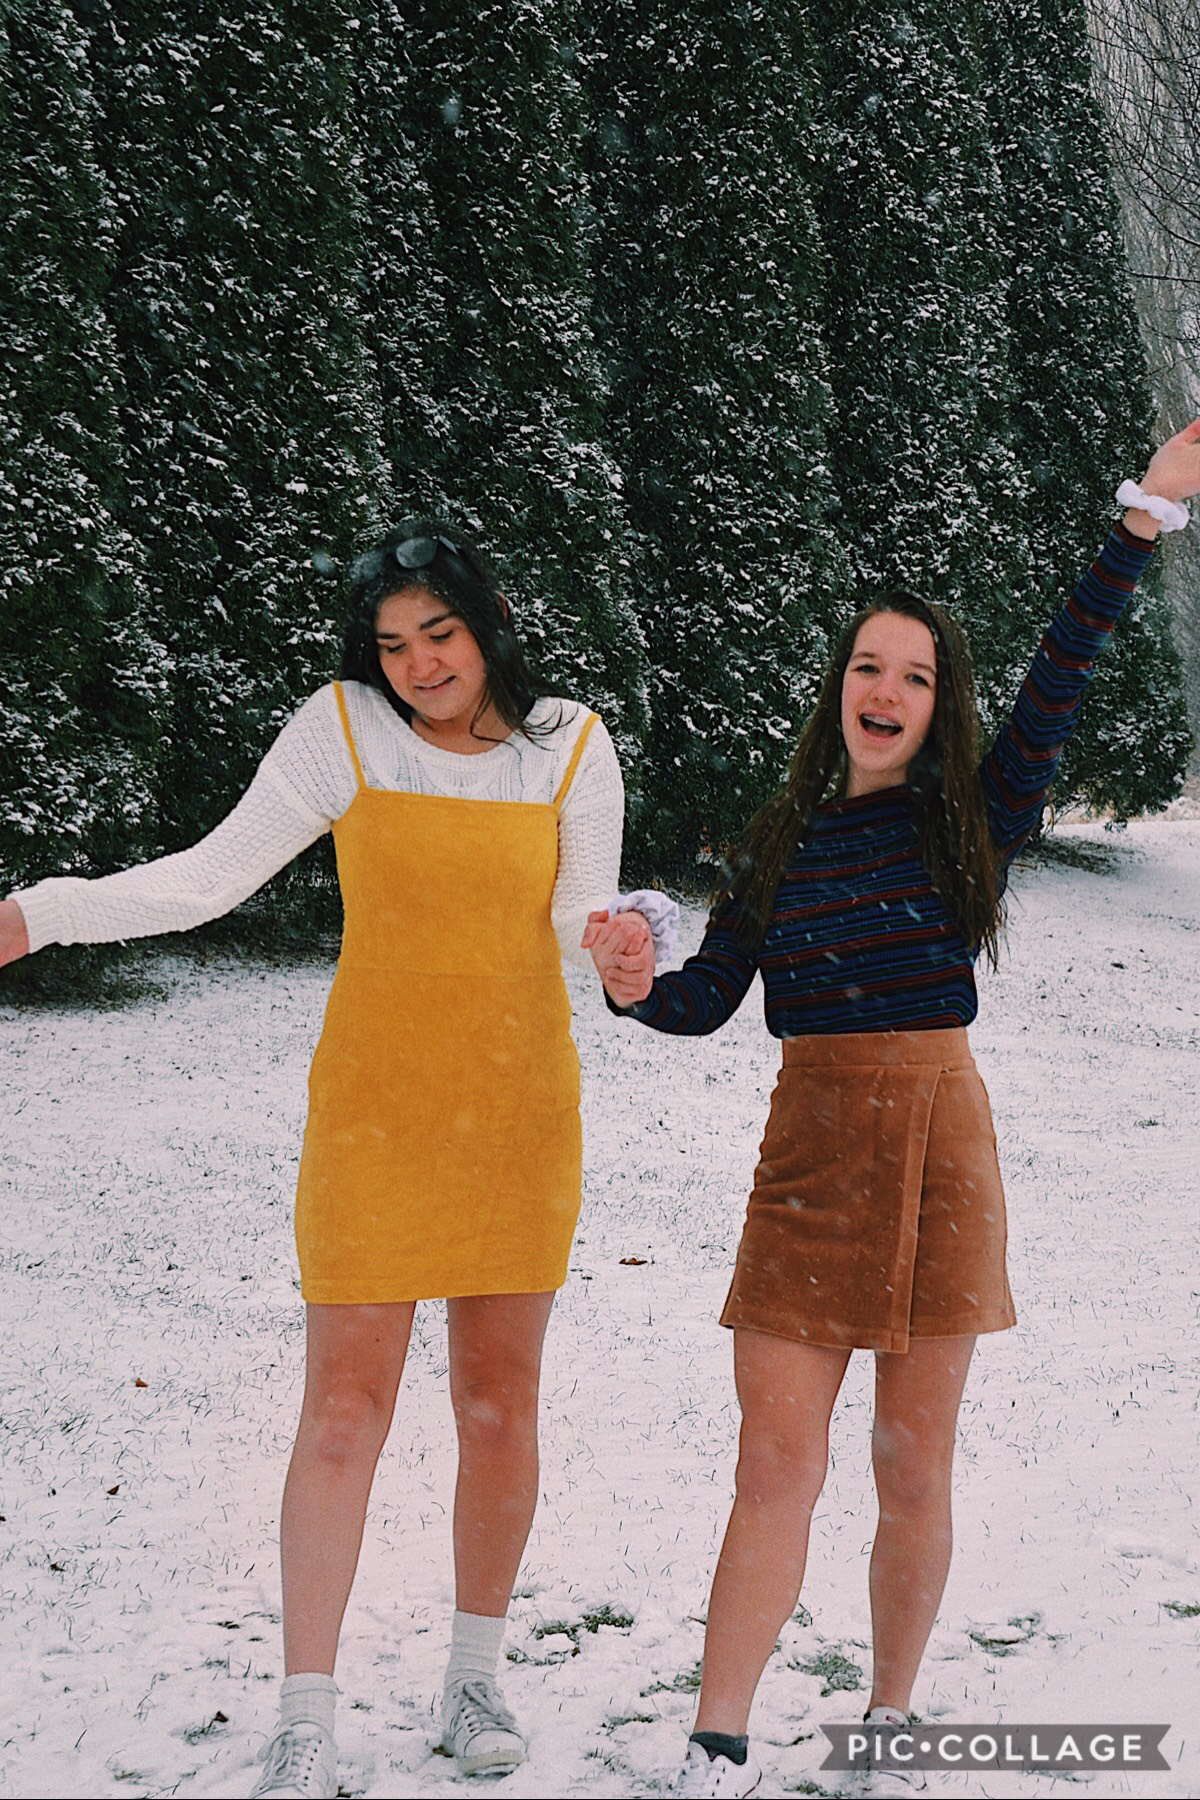 we literally carried out my big tripod all the way behind my backyard & literally froze to death trying to take it,...but with her: it was a fun adventure